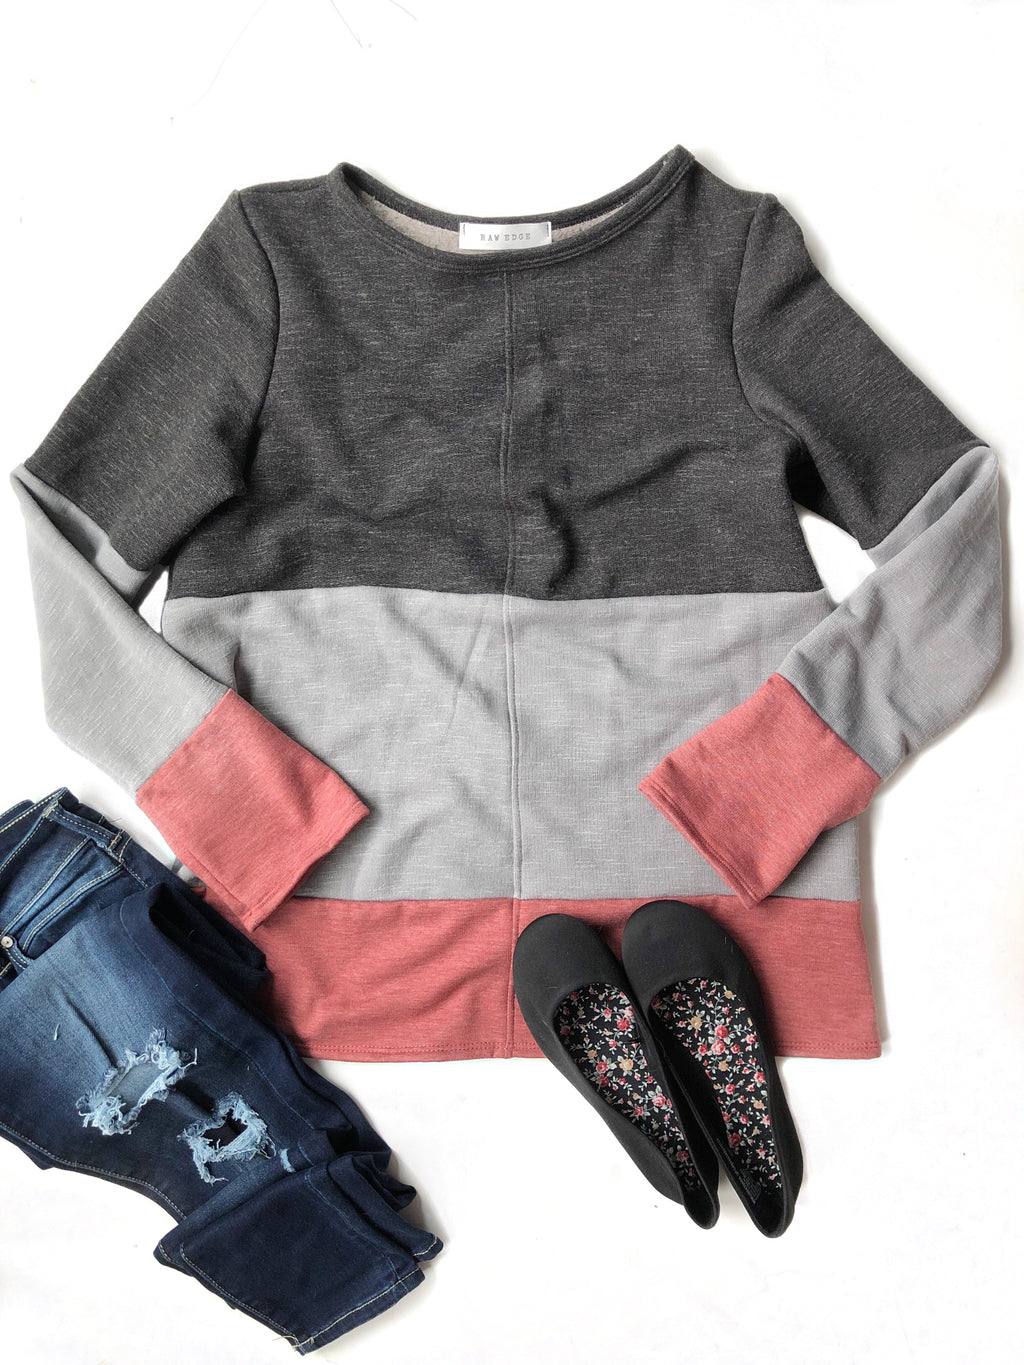 Weekend Plans Color Block Top in Black, Gray and Red